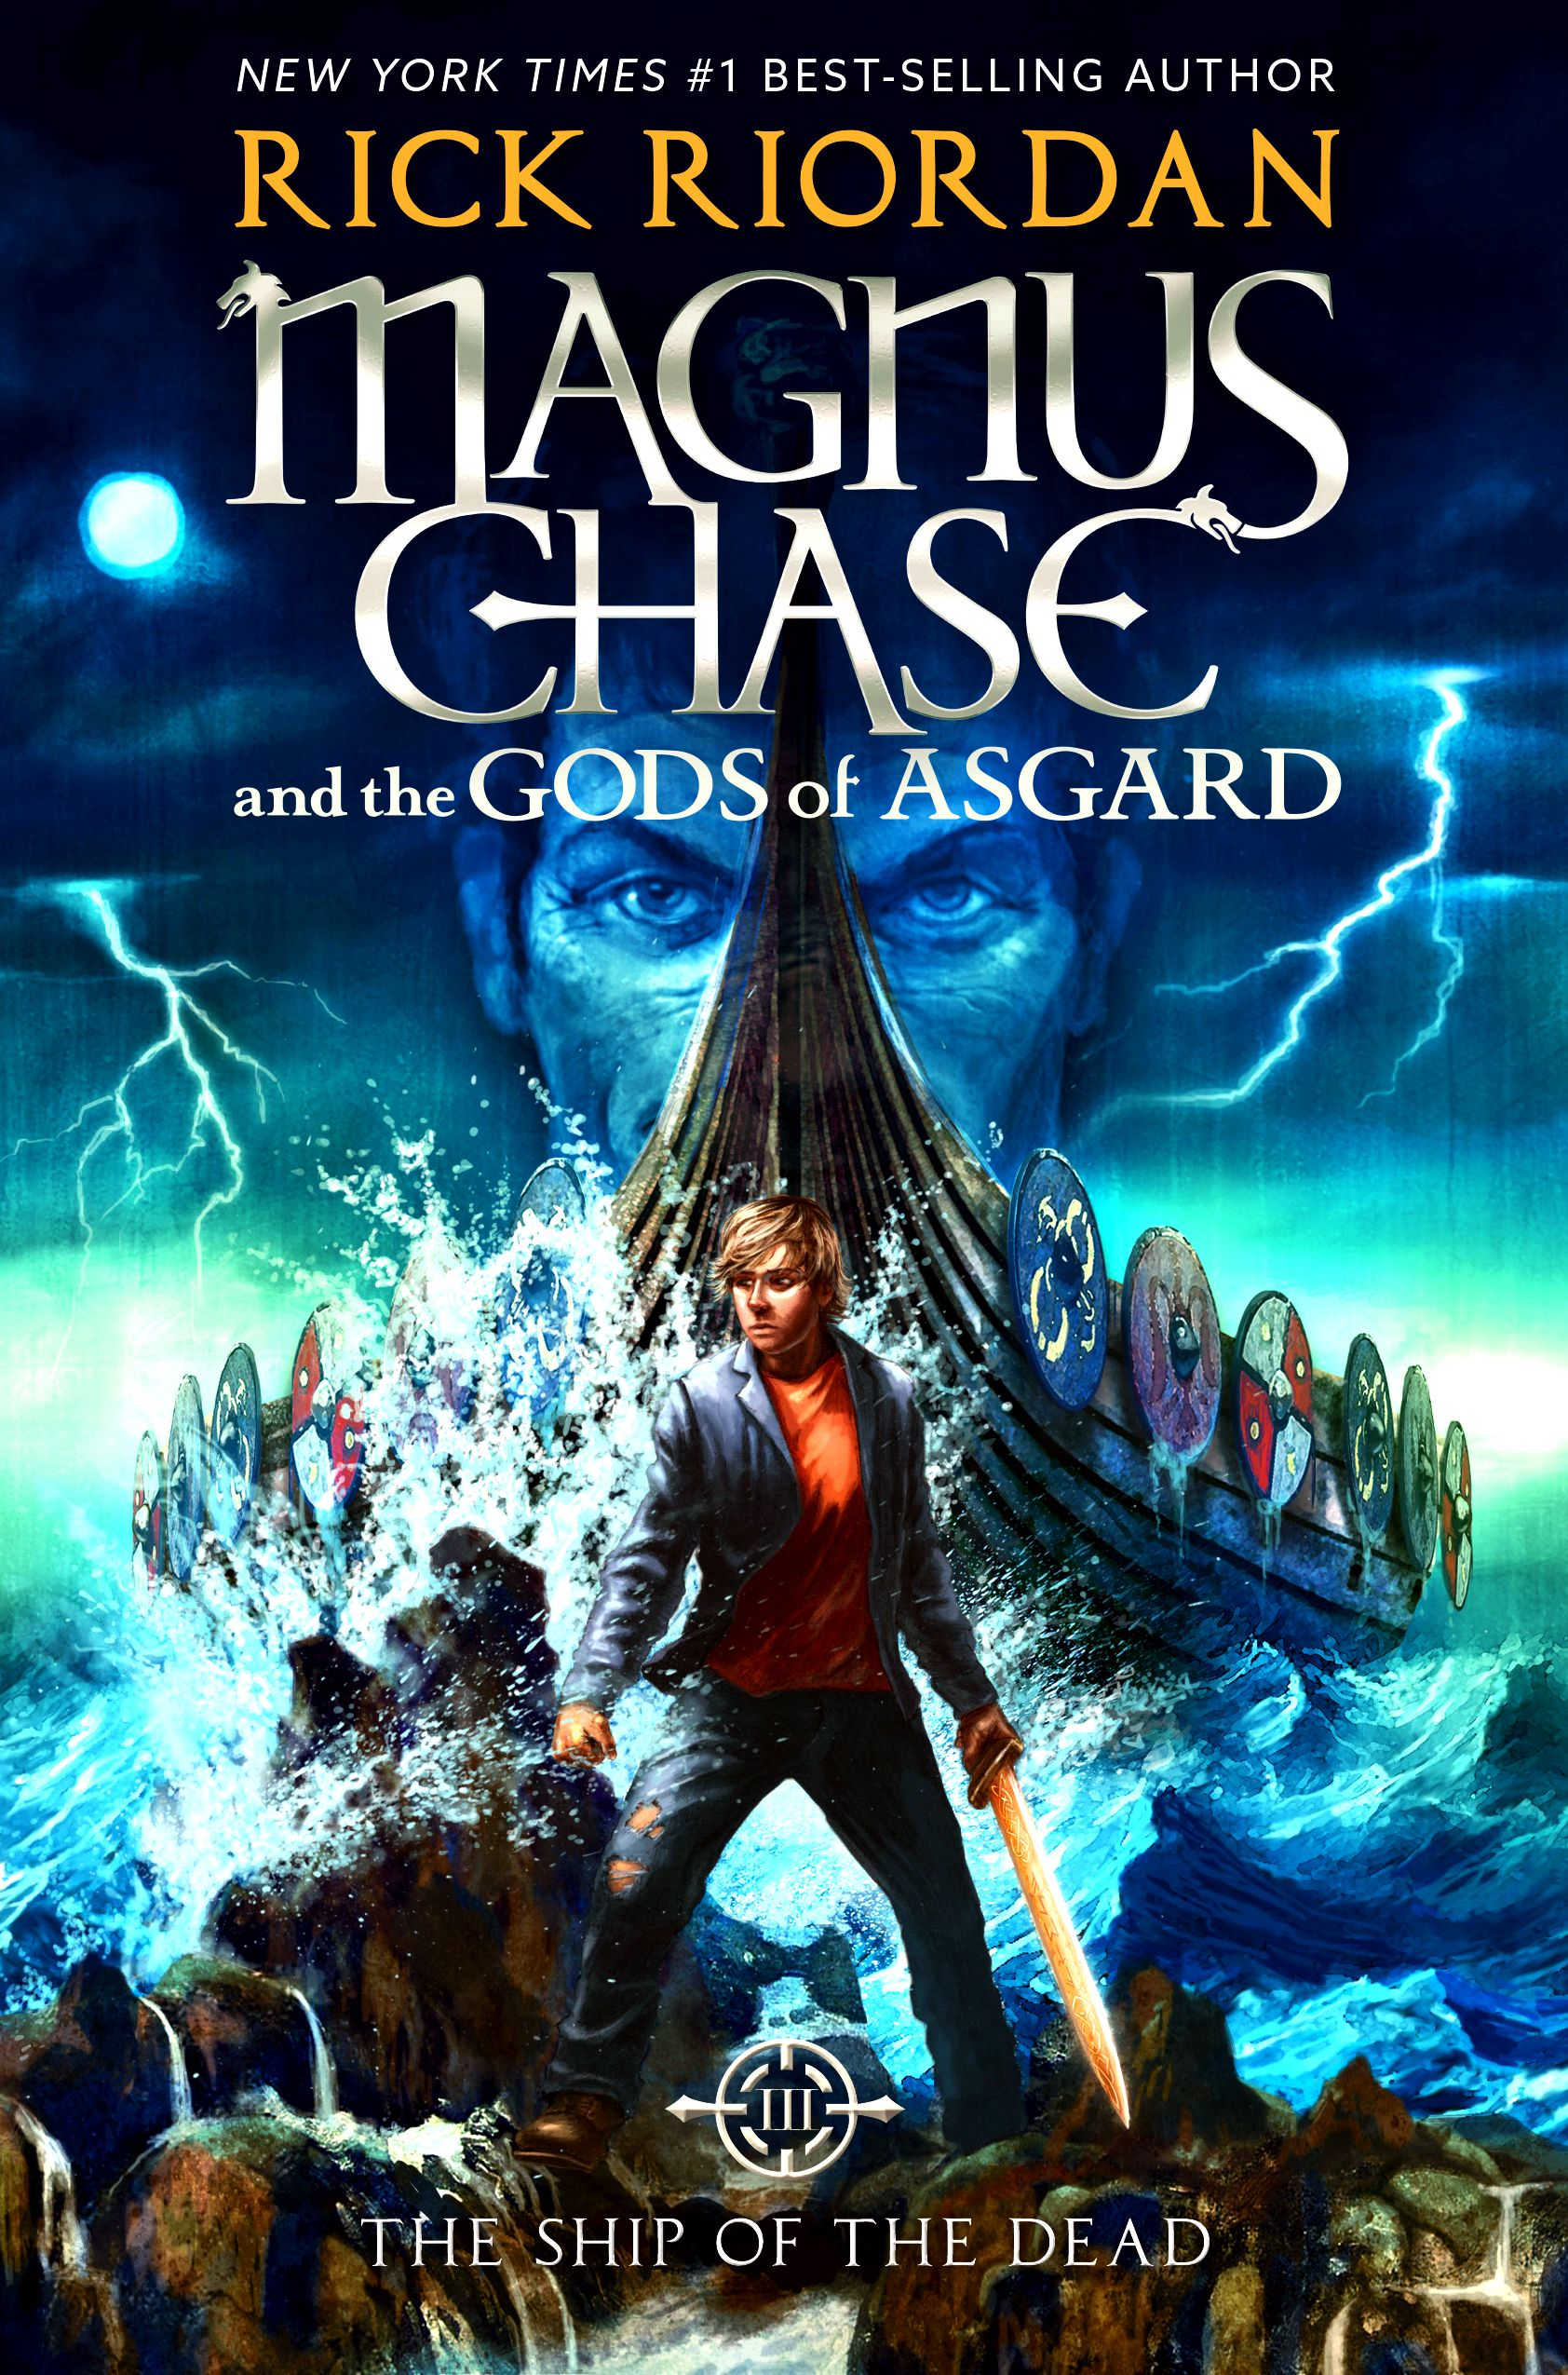 Magnus chase and also the gods of asgard the sword of summer time. by: ron riordan Exposition               Hey